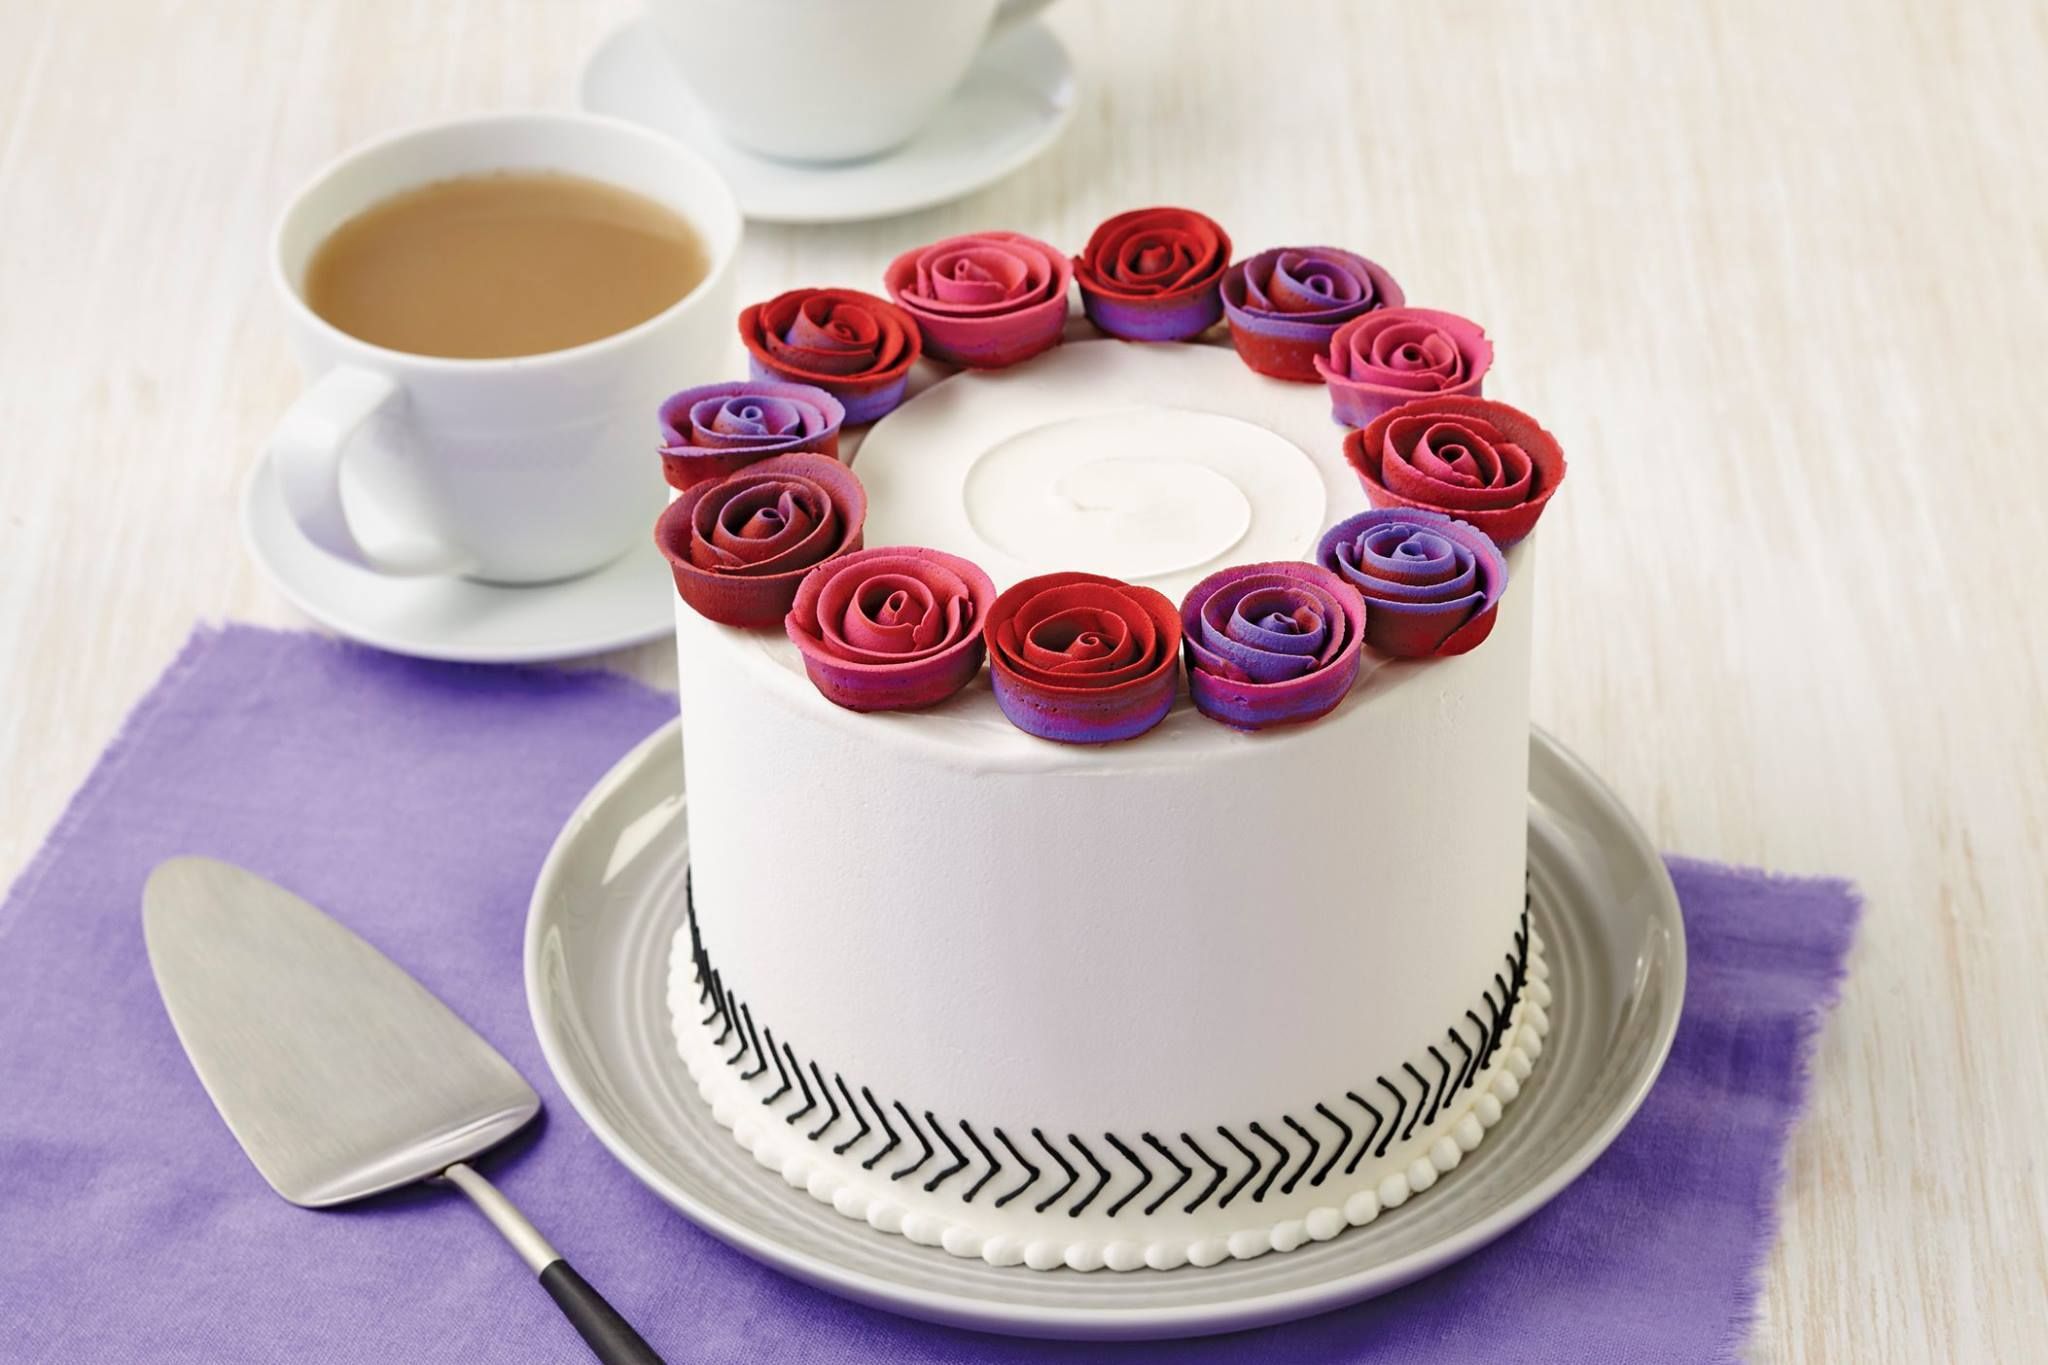 Learn how to decorate cakes and sweet treats with basic buttercream techniques and six simple-to-pipe flowers that transform ordinary cakes into extraordinary results. Sign up at @michaelsstores